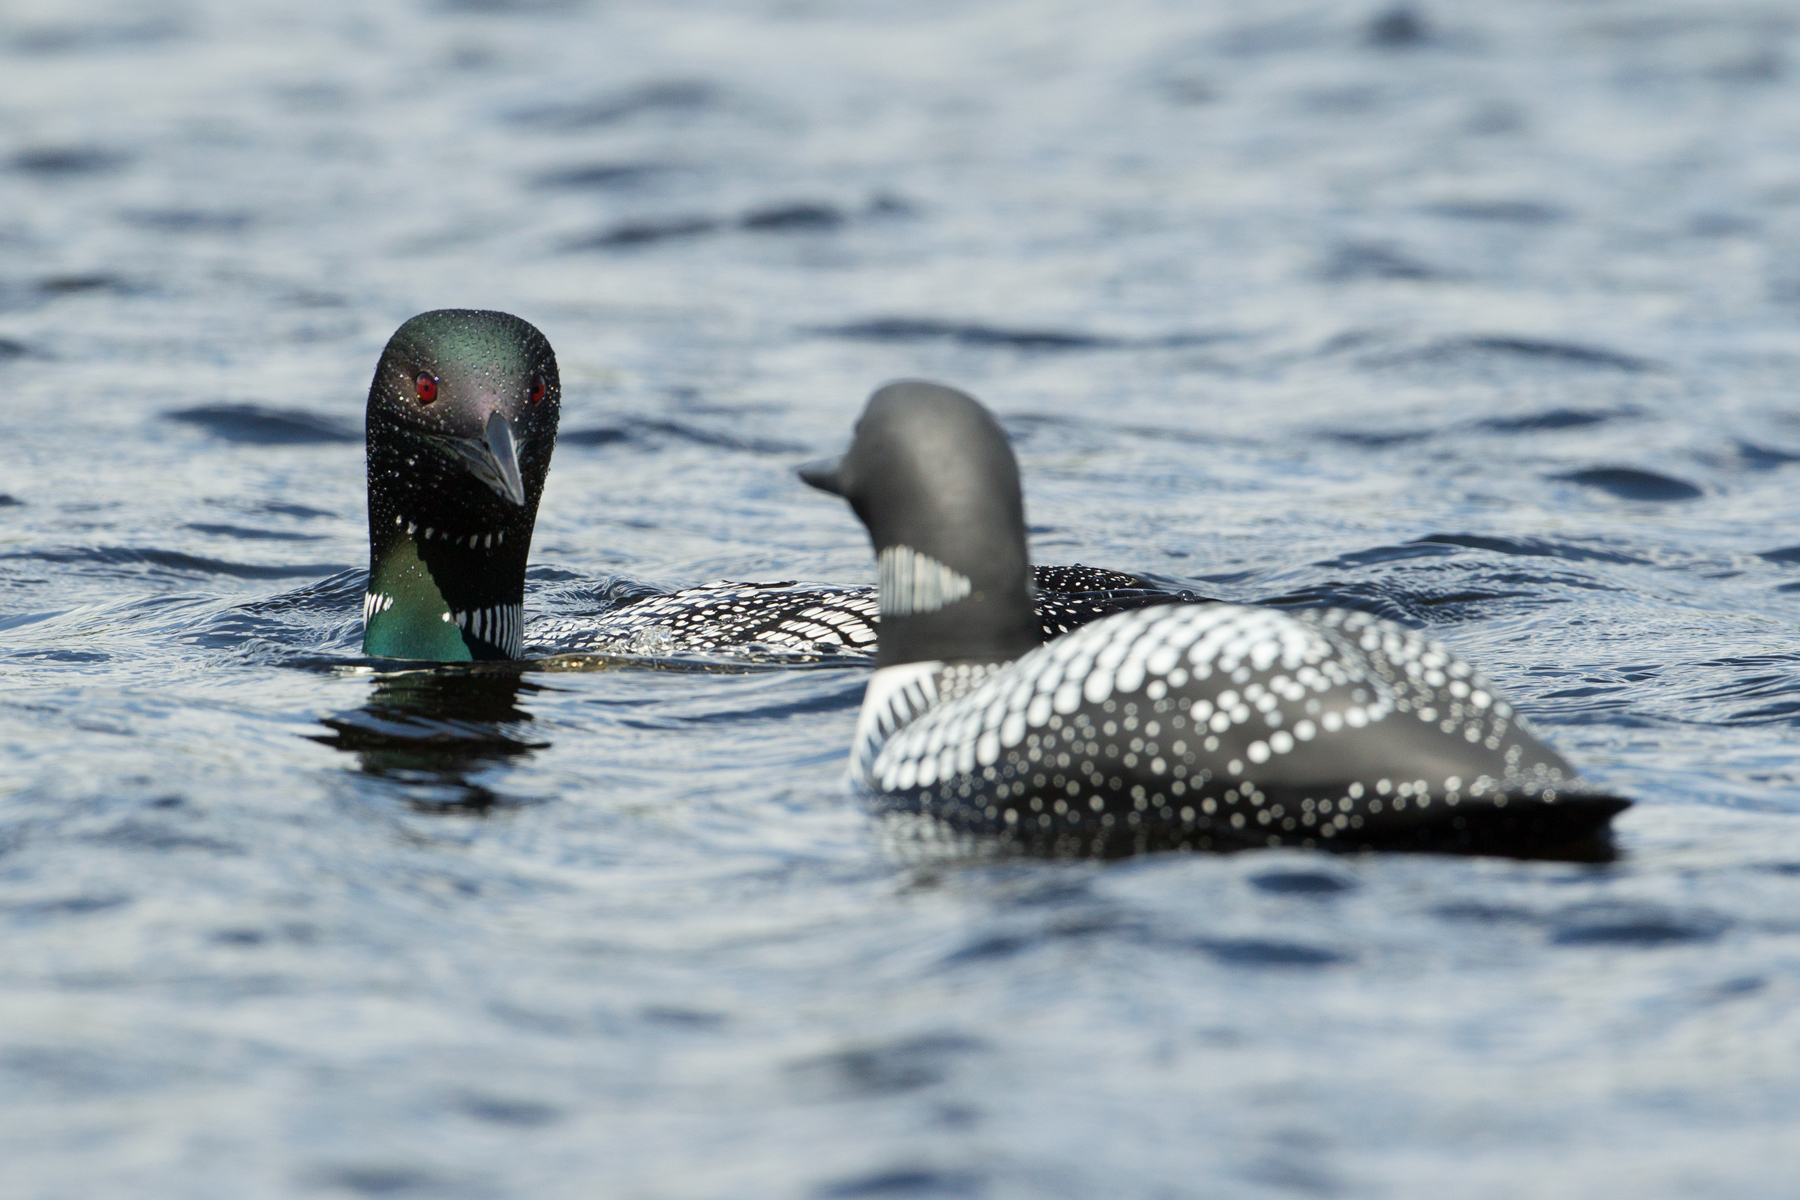 A Common Loon (rear) approaches a loon decoy (front) above a capture net. Once above the capture net, one researcher will suddenly jump up and clap. Doing this scares the loon and causes it to dive down into the net.   Image ©Connor Stefanison